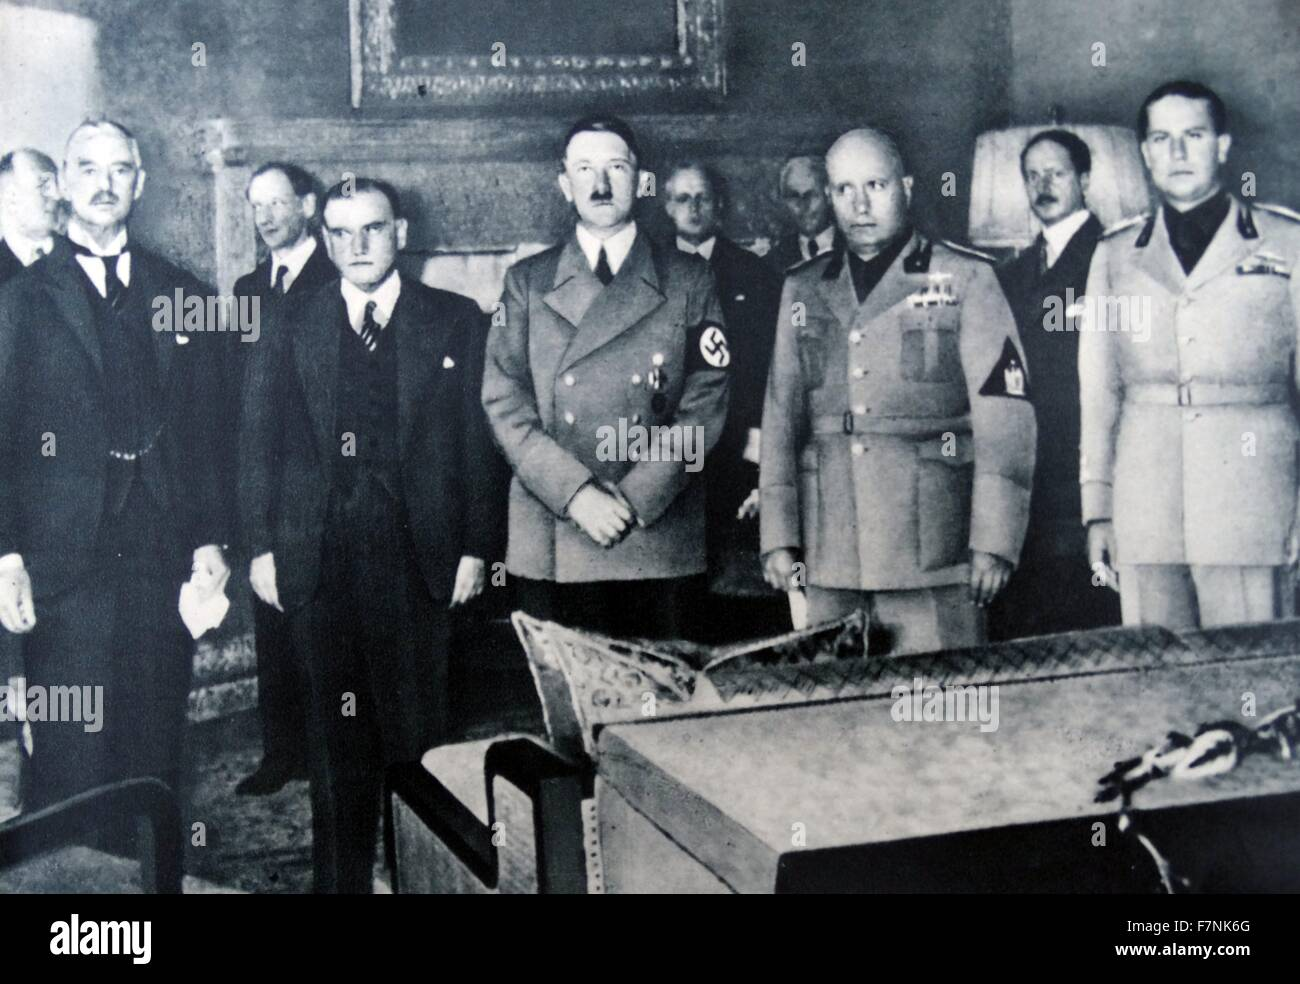 29th September 1938 Munich Conference From Left To Right Stock